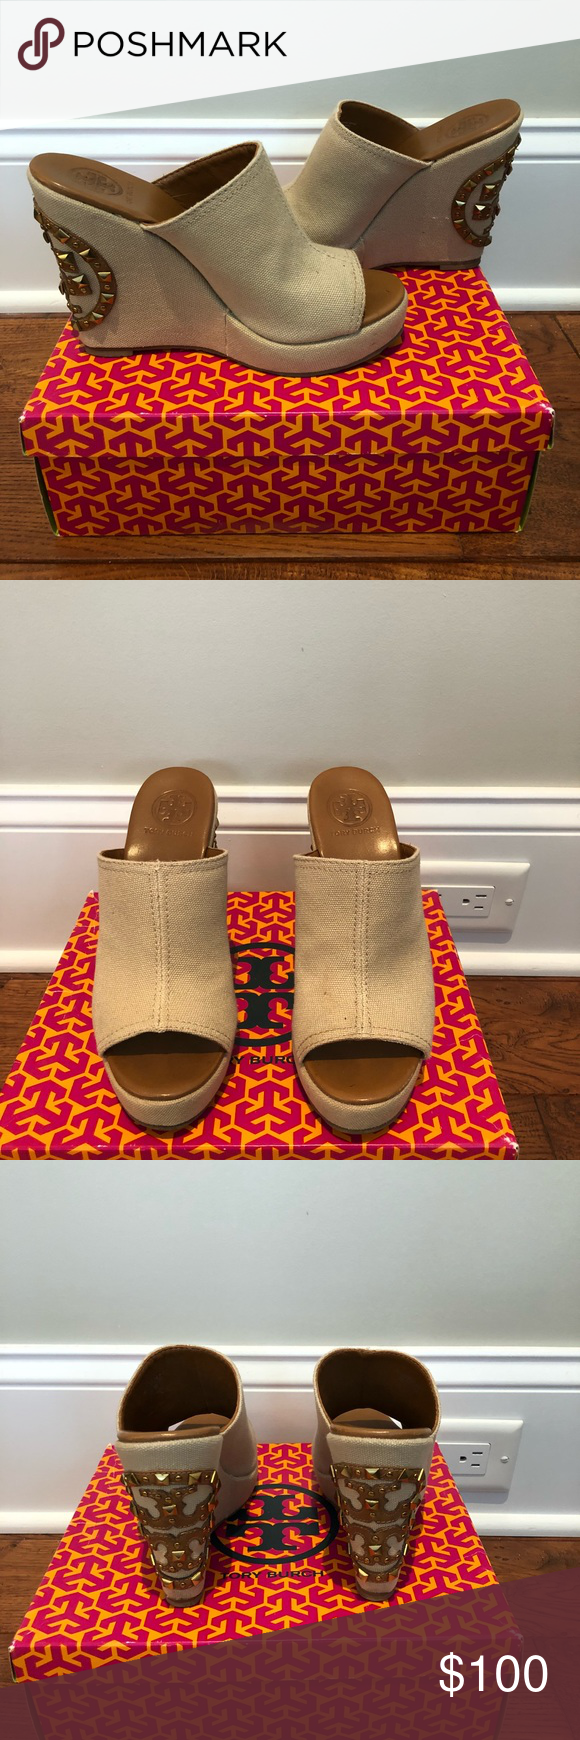 a468b002e2e Tory Burch Meredith Wedge Sandal Tory Burch Meredith Light Brown Canvas  Wedge Sandal with Studded Accents on back heels. Size 7.5 EXCELLENT  Condition.